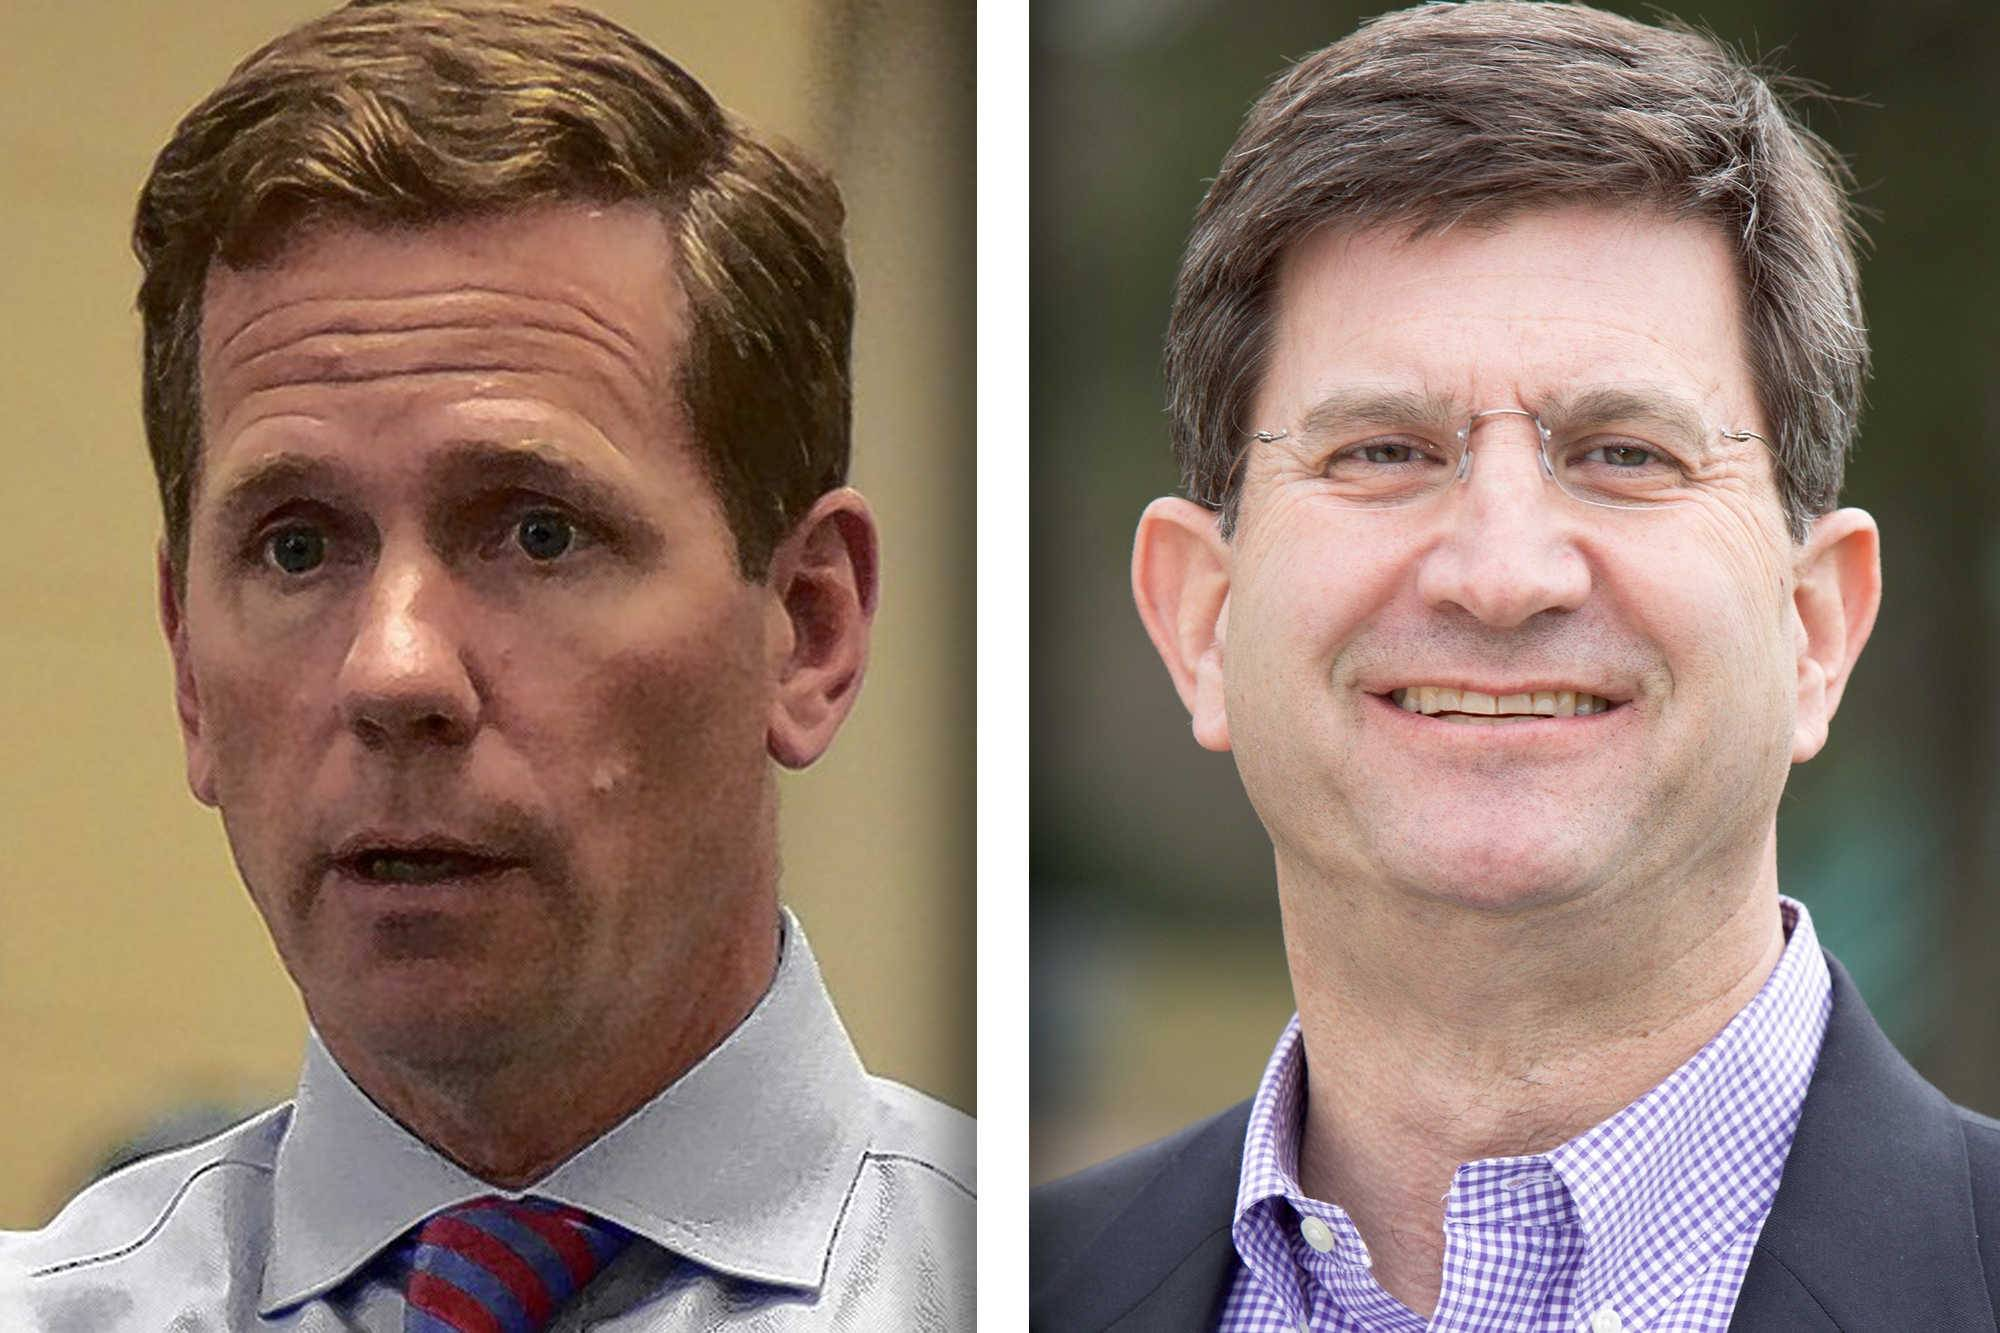 Where you can see Dold and Schneider discuss issues before the election